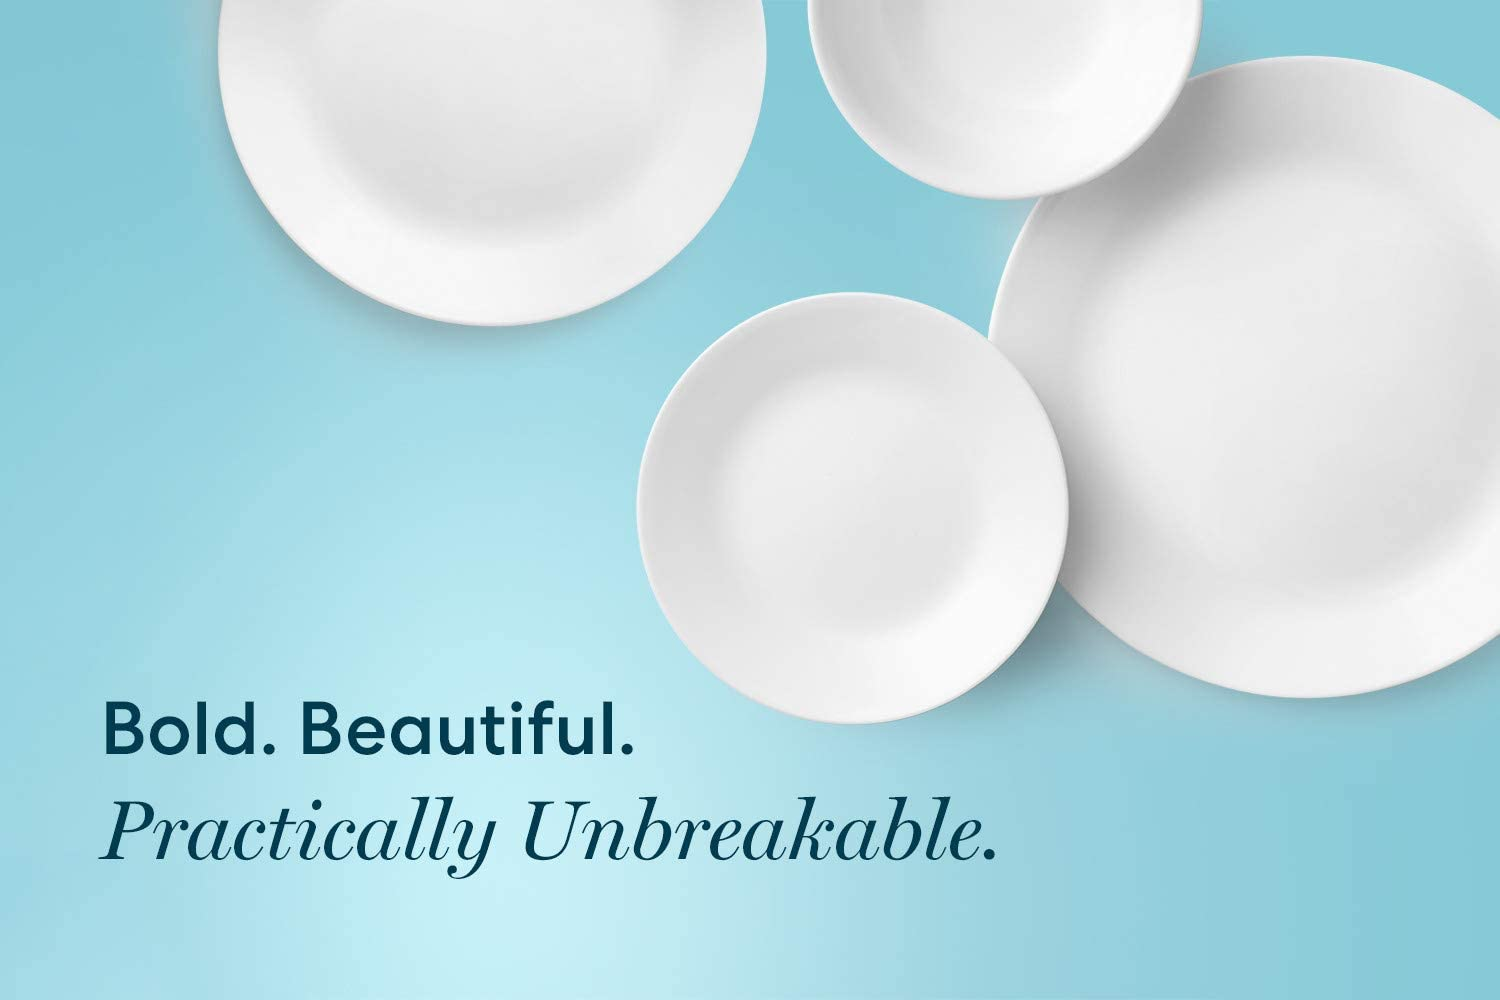 corelle dinnerware set, Dishwasher safe, microwave and oven safe